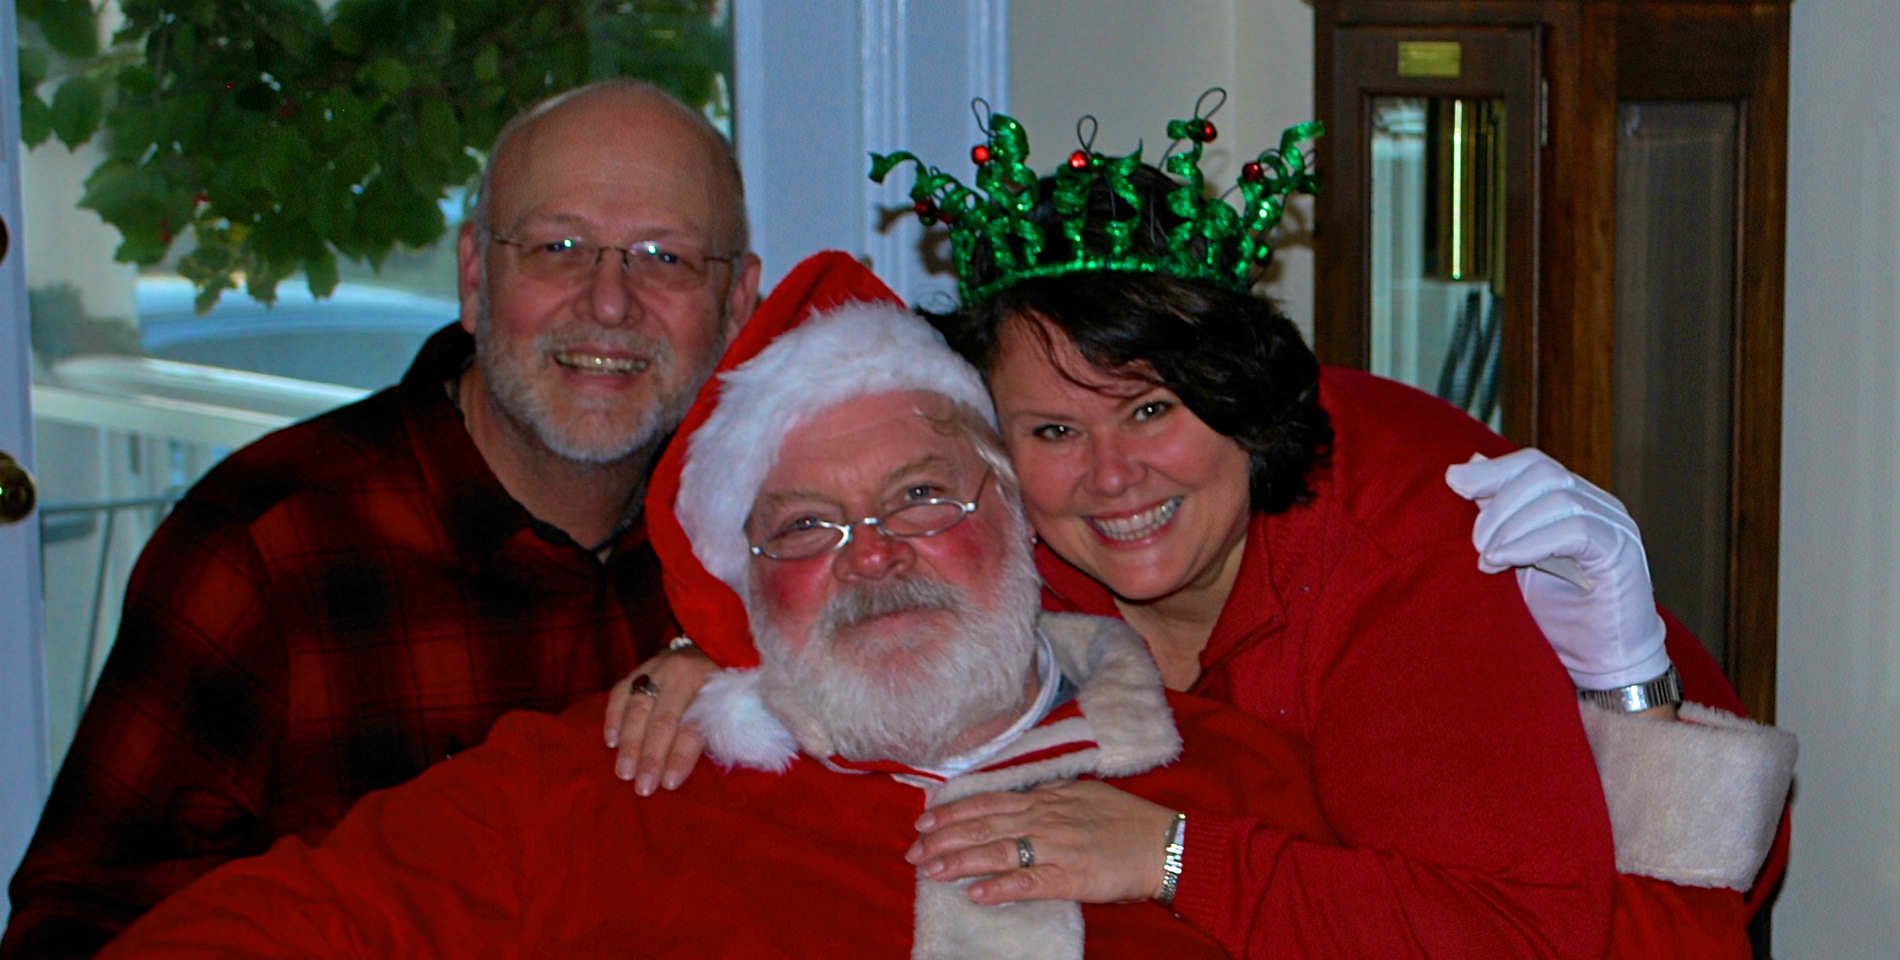 The Innkeepers, Tammy and Jim, smile with a red and white capped and white bearded Santa Claus.